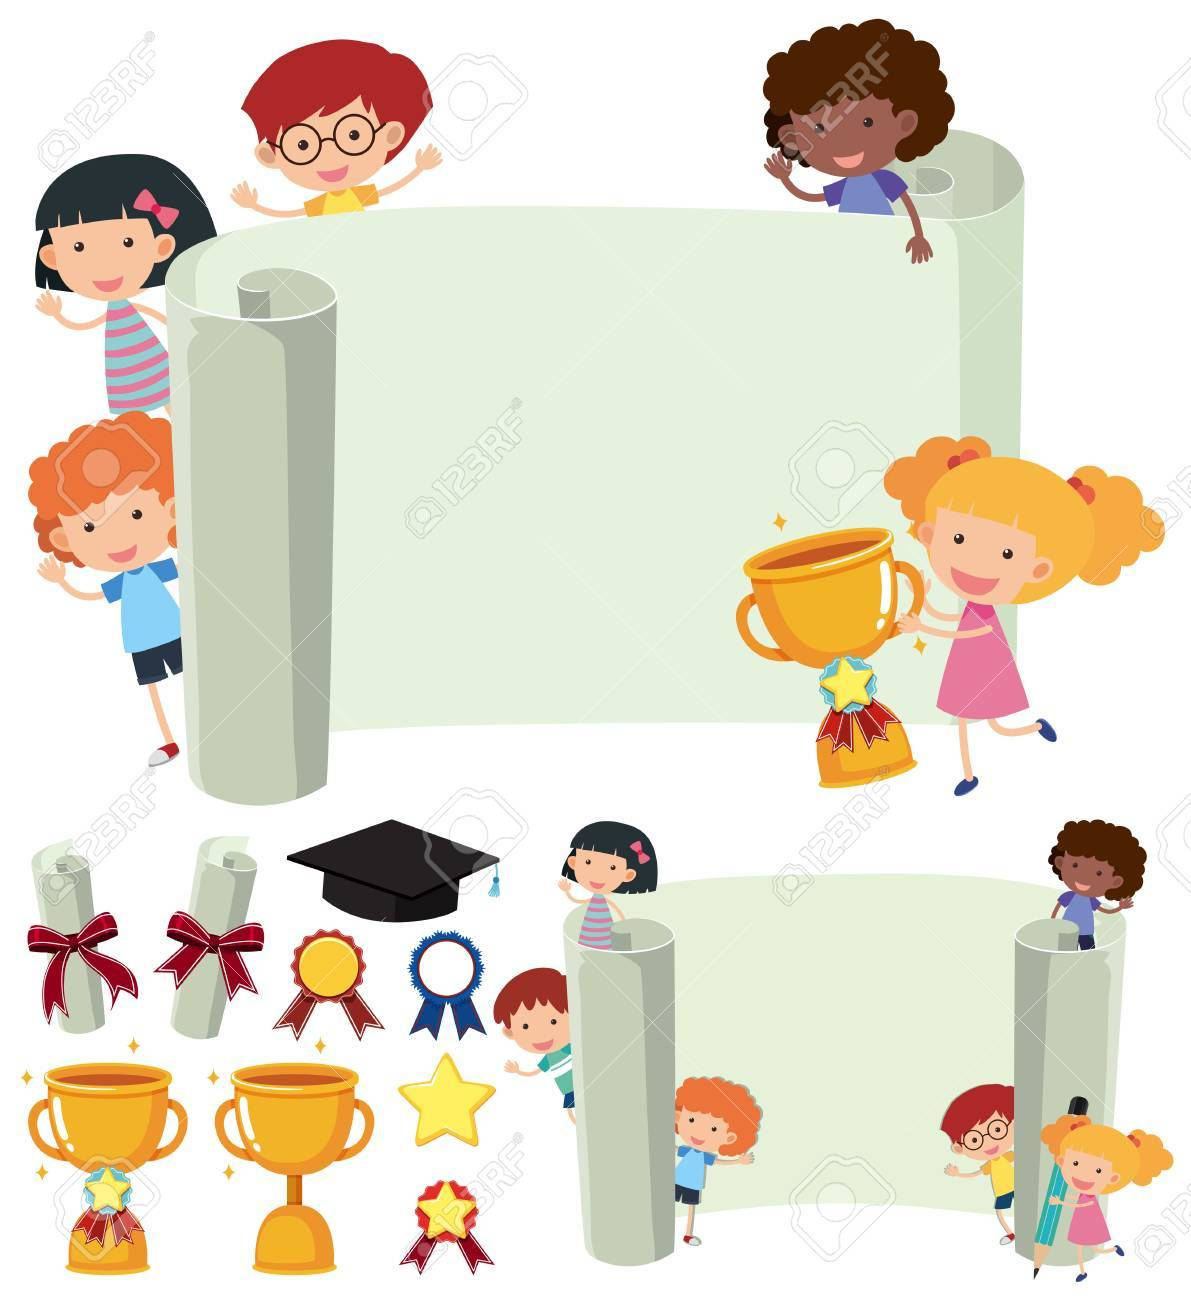 Paper Template With Happy Kids And Trophy Illustration Stock Vector